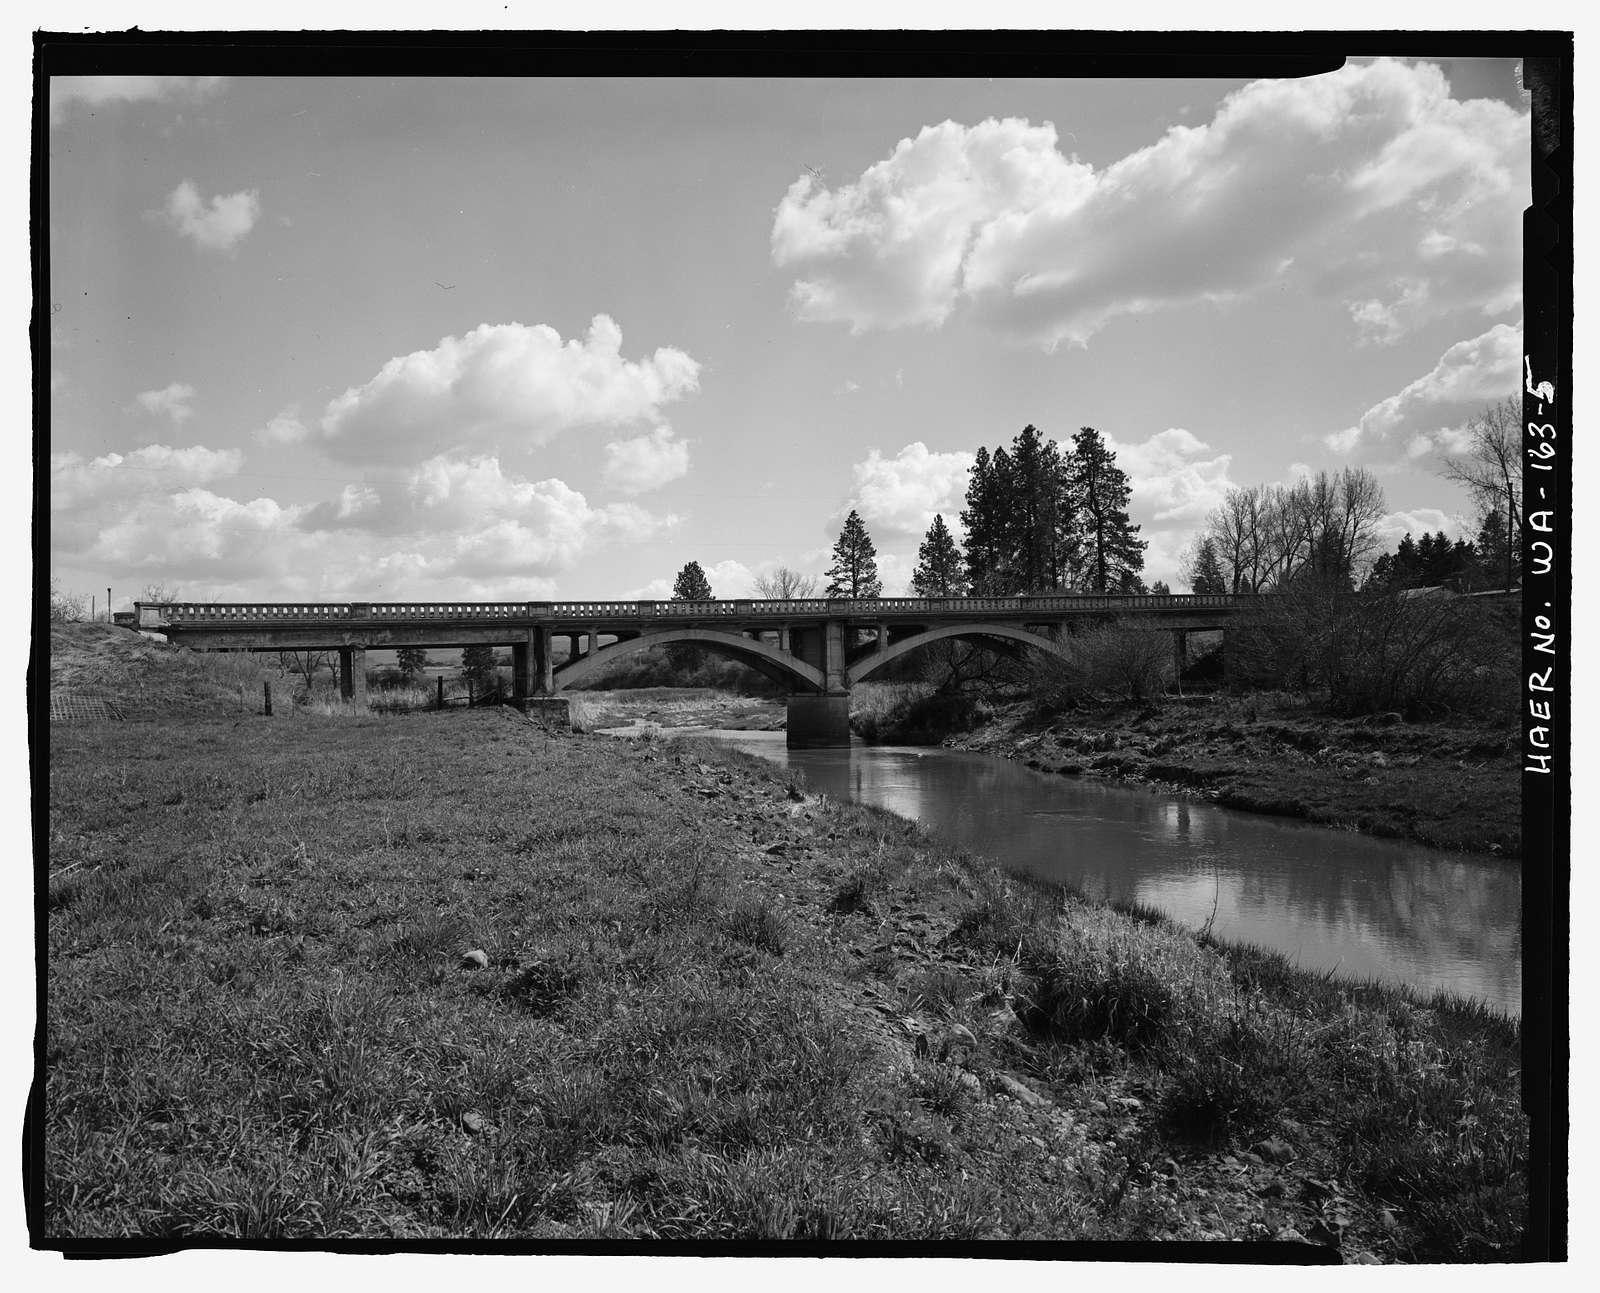 Latah Creek Bridge No. 4102, Prairie View Road, Waverly, Spokane County, WA